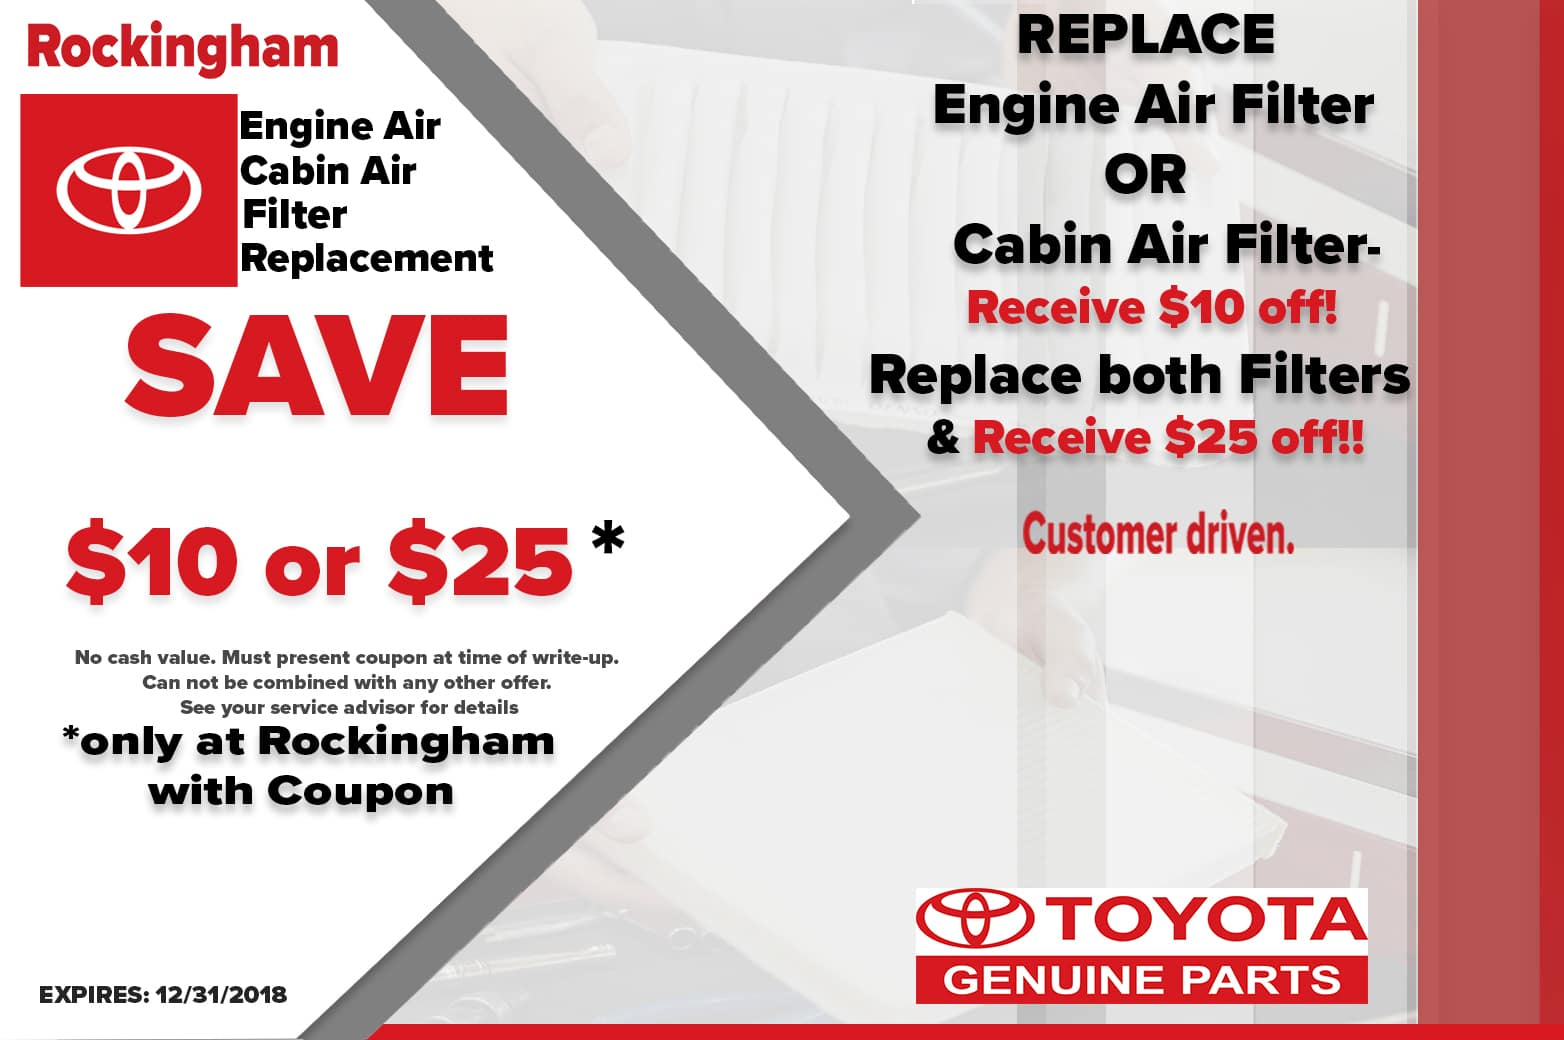 ENGINE AIR AND CABIN AIR FILTER SPECIAL